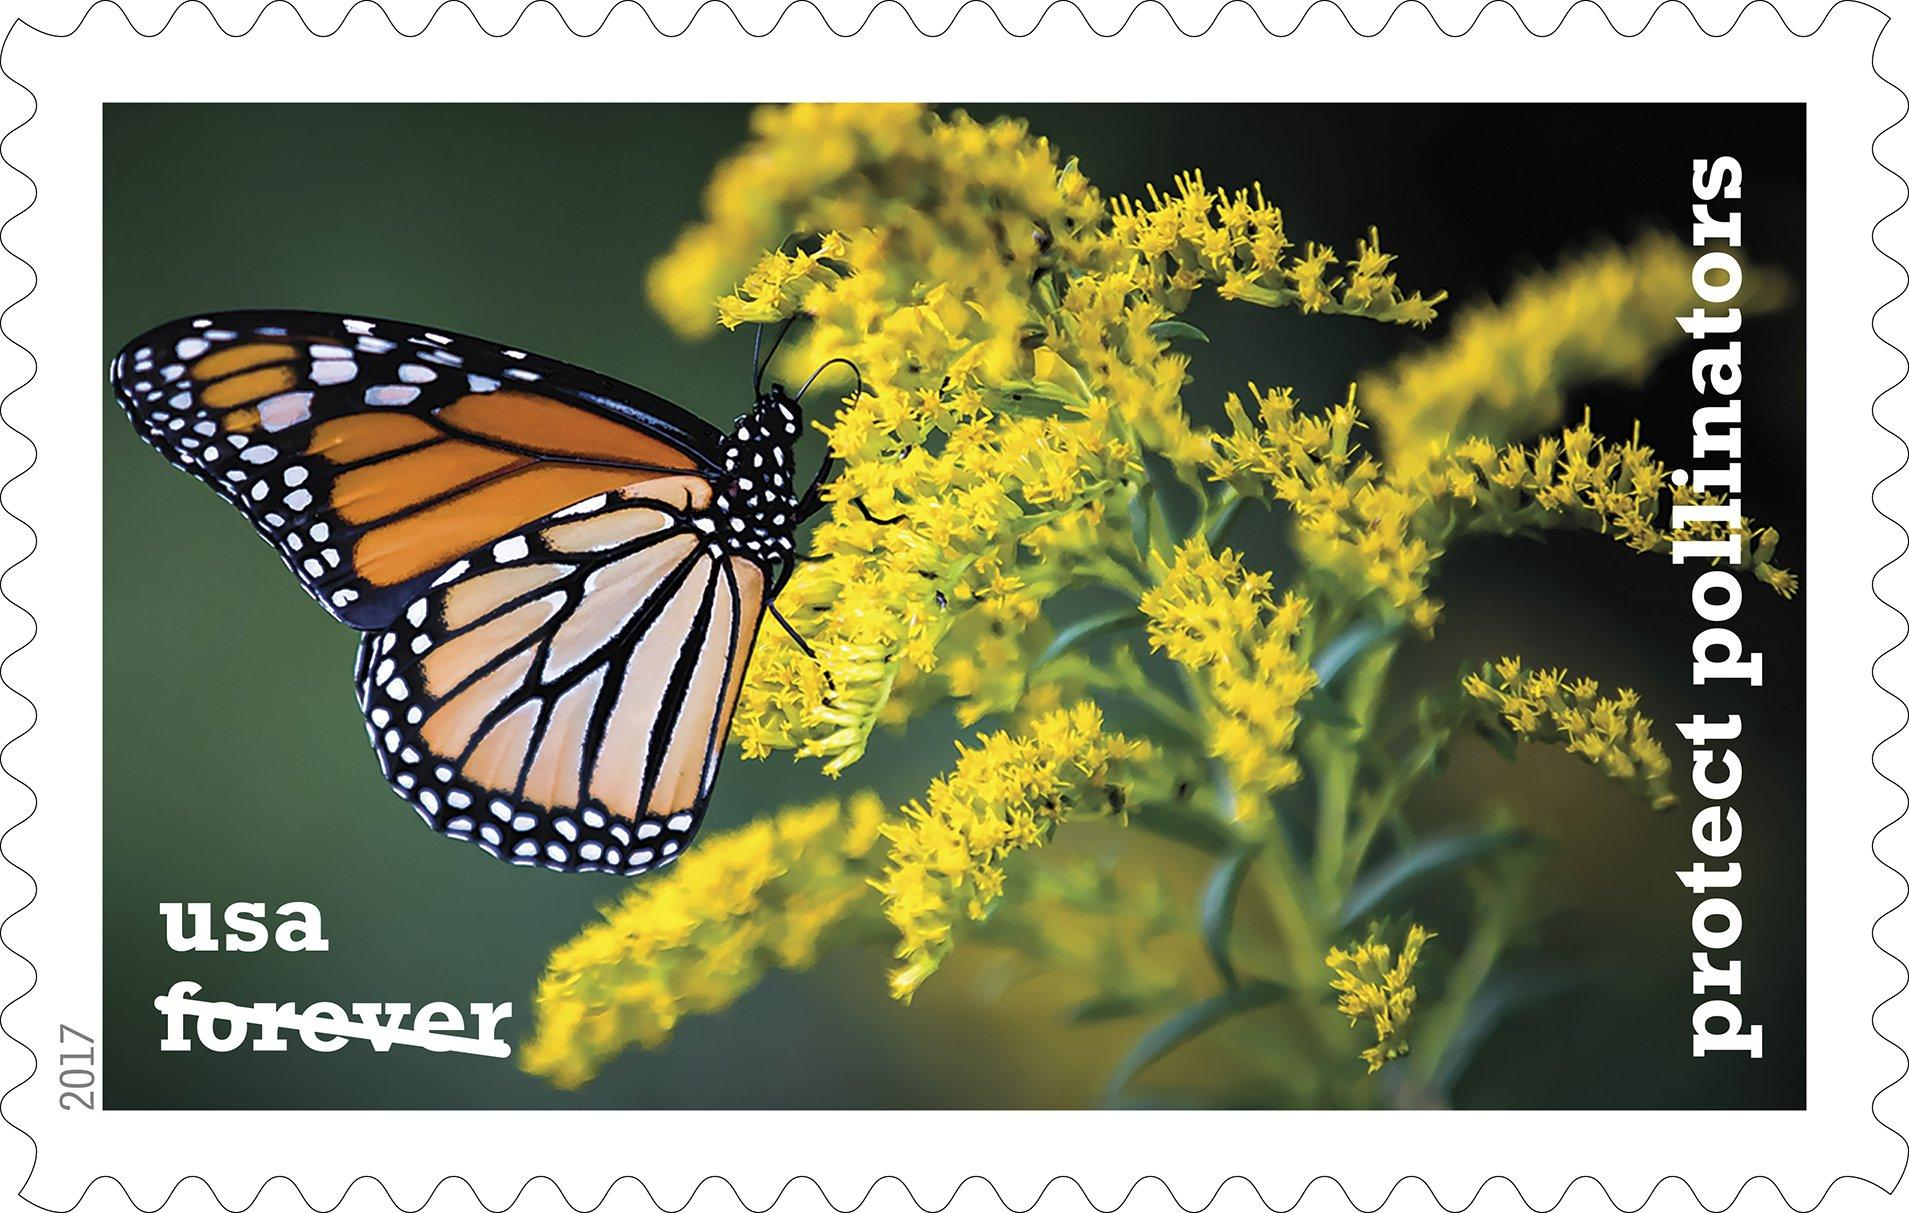 springfield photographer s butterfly shot featured on stamp  fowler s picture was taken in 2015 and was originally featured in a photo essay about monarch butterflies migrating from and the northern